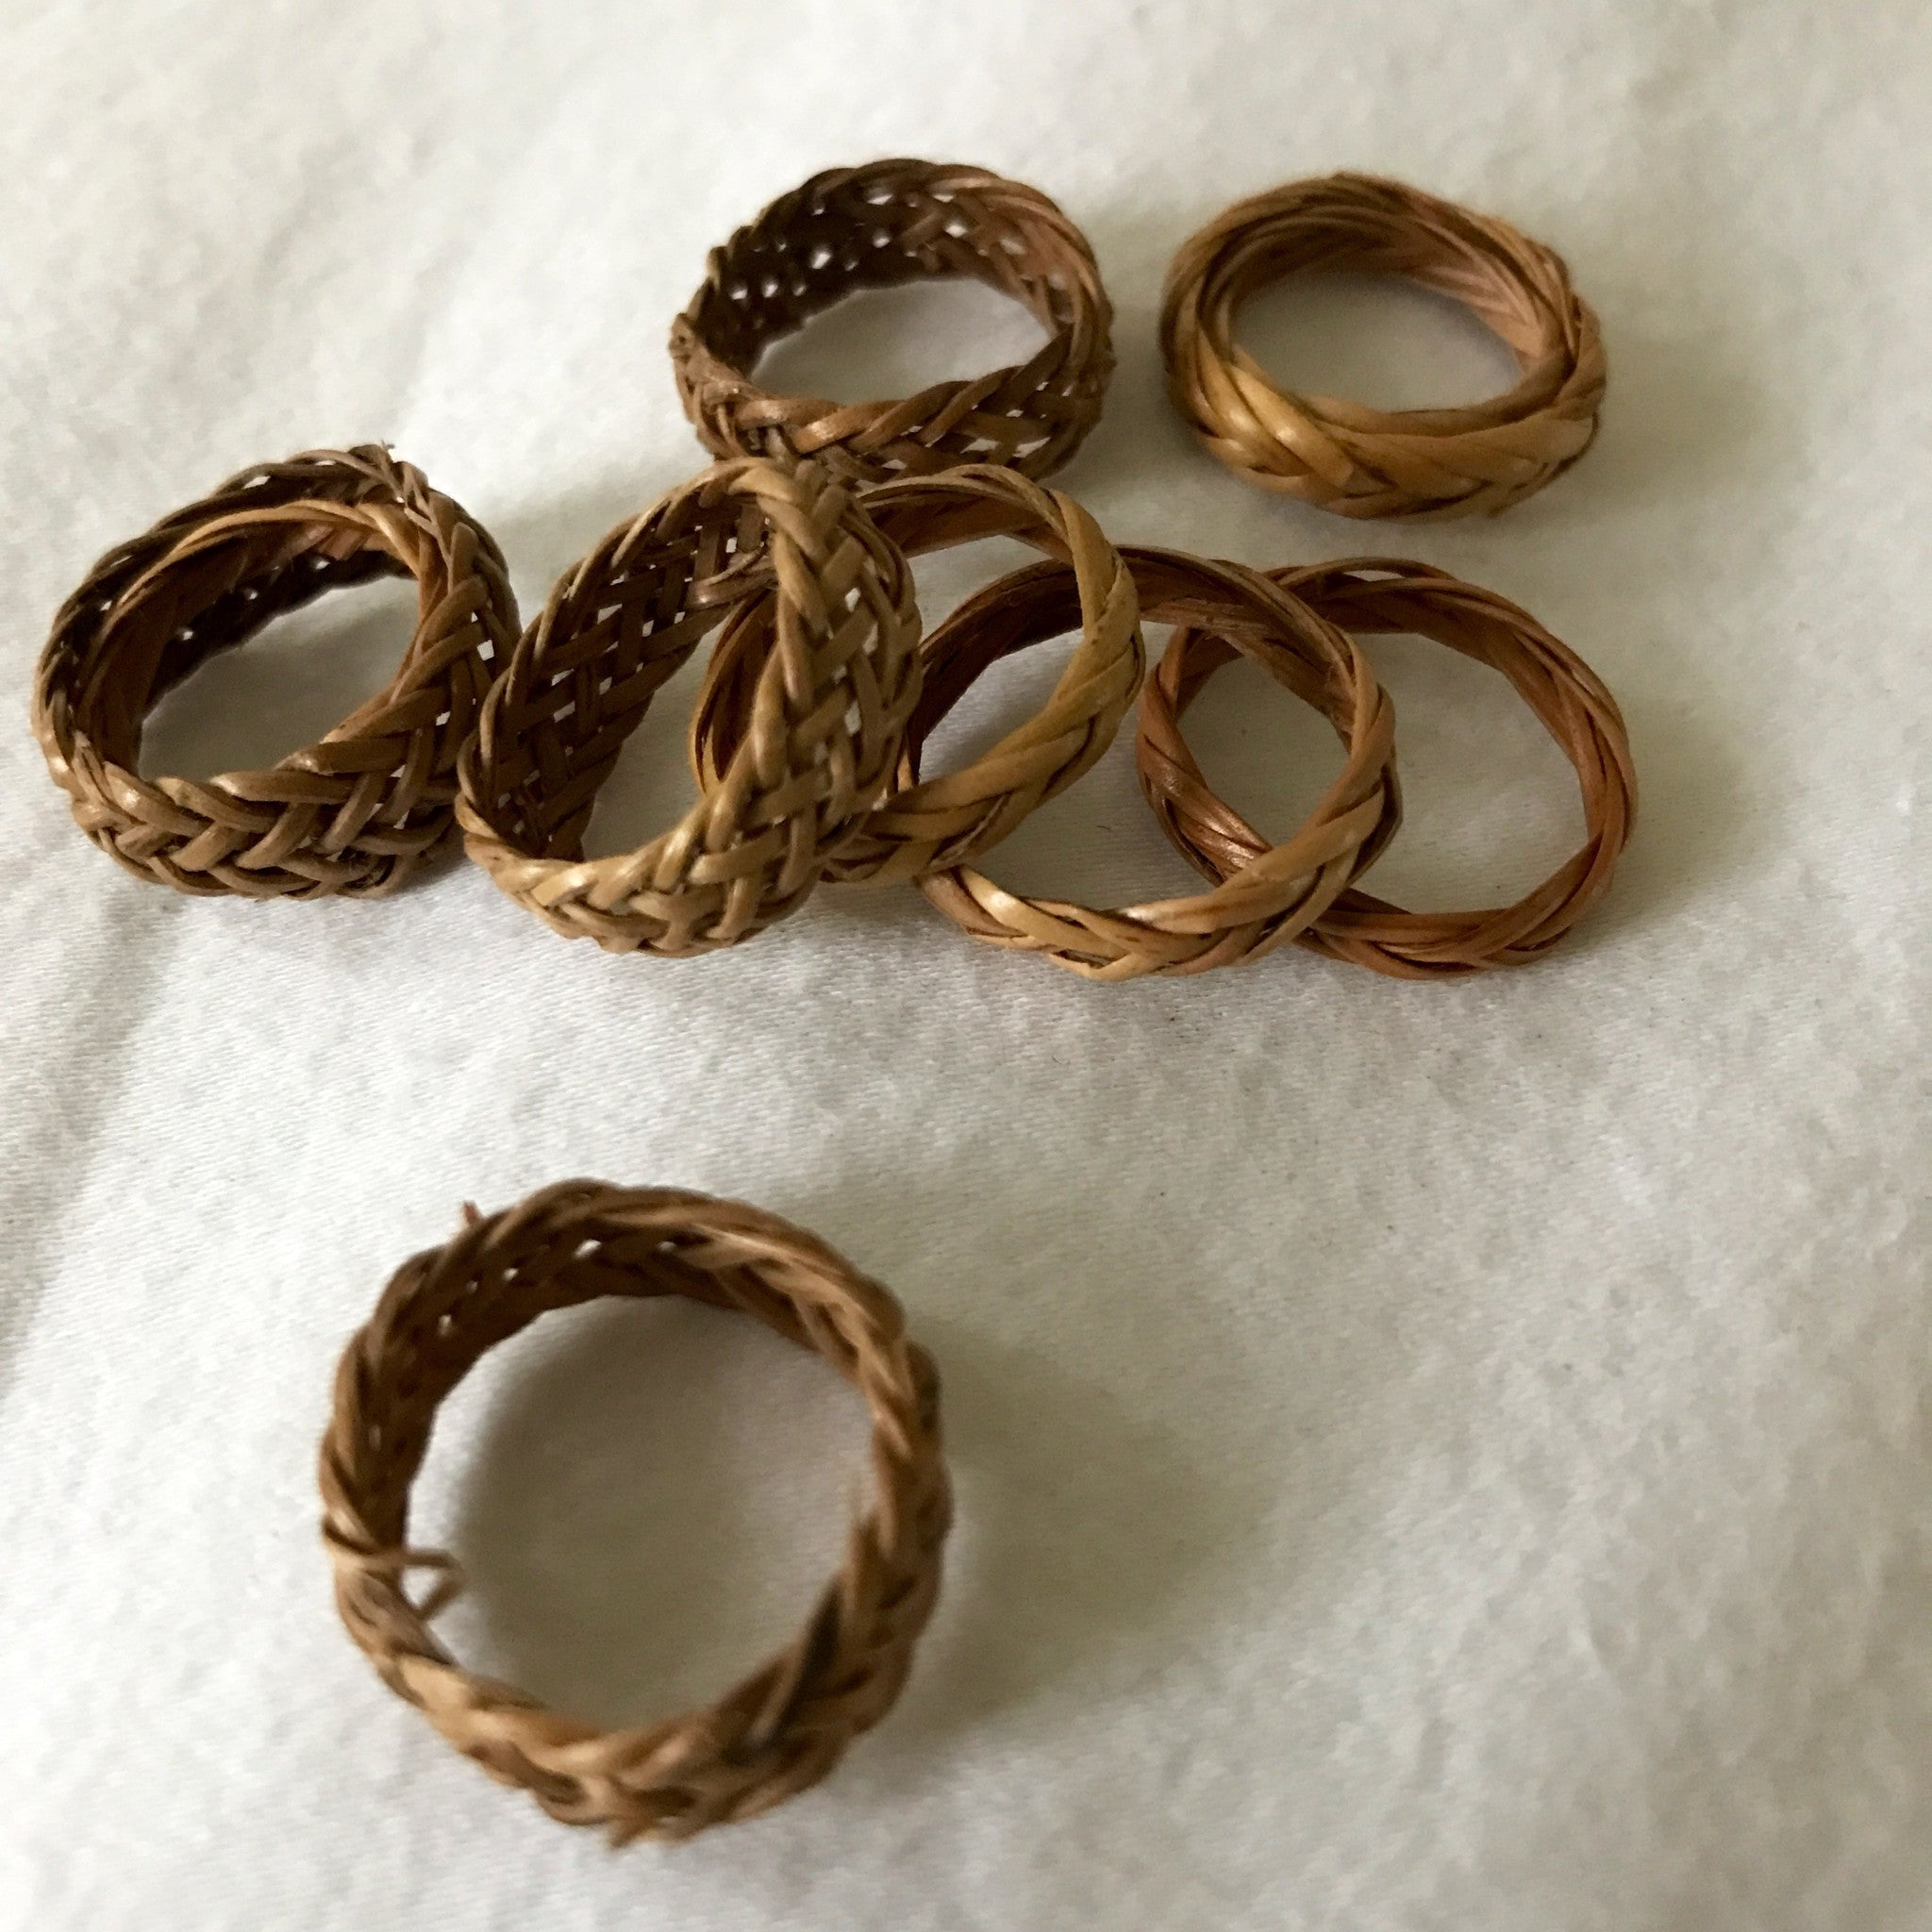 woven rings from bali